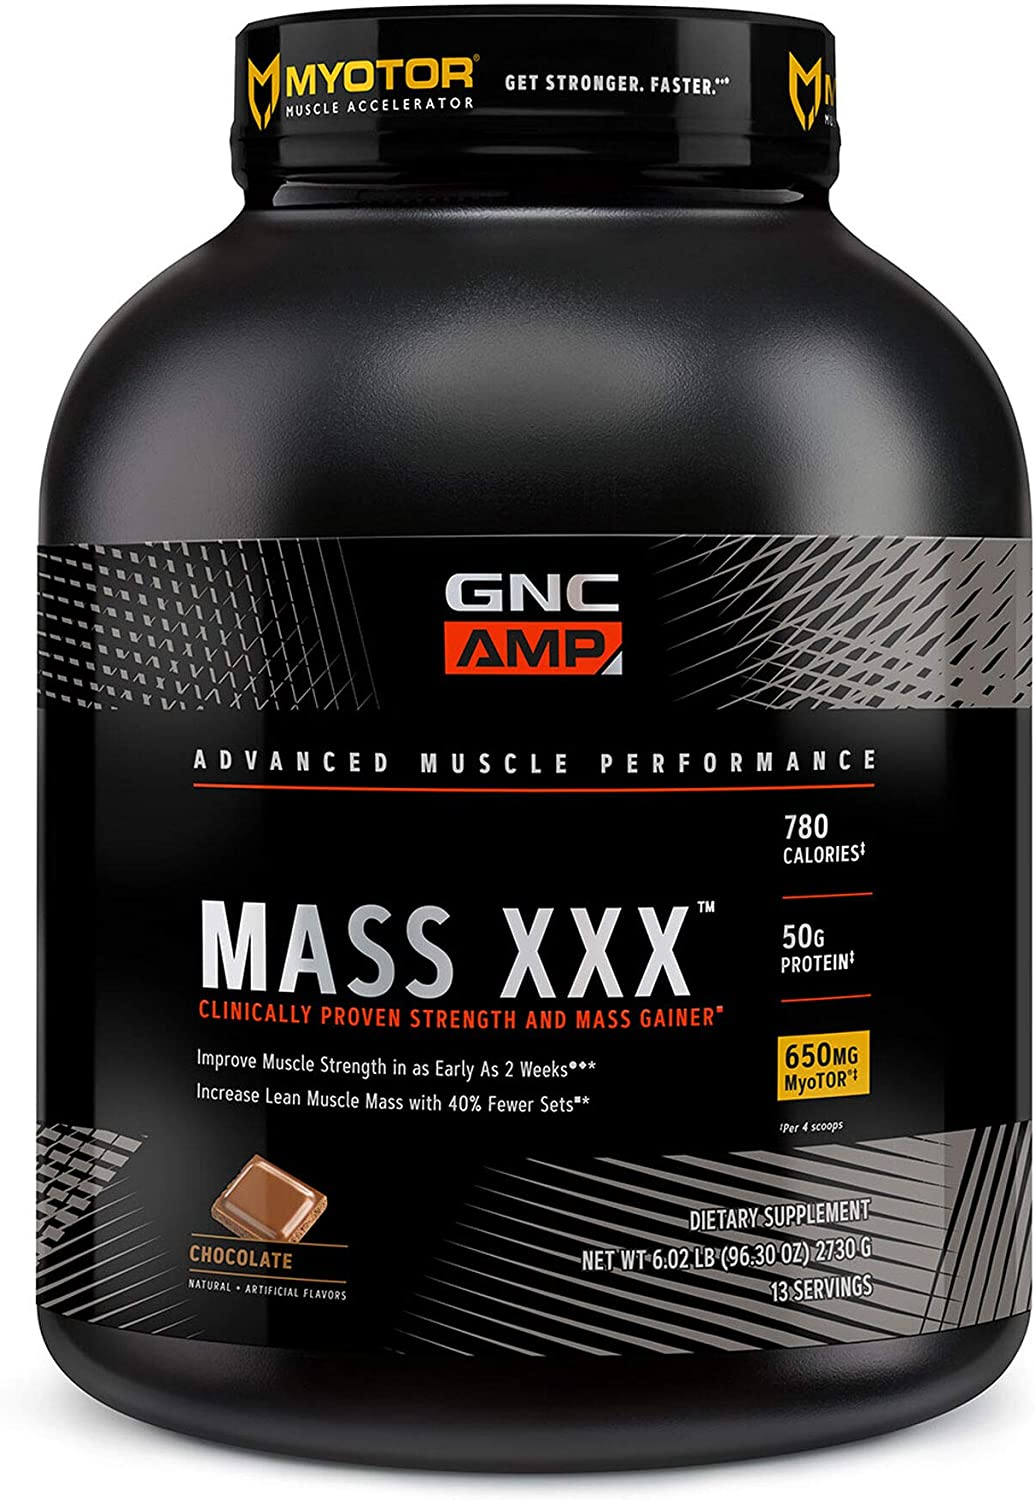 Shipping included GNC excellence AMP Mass XXX Chocolate with - MyoTor